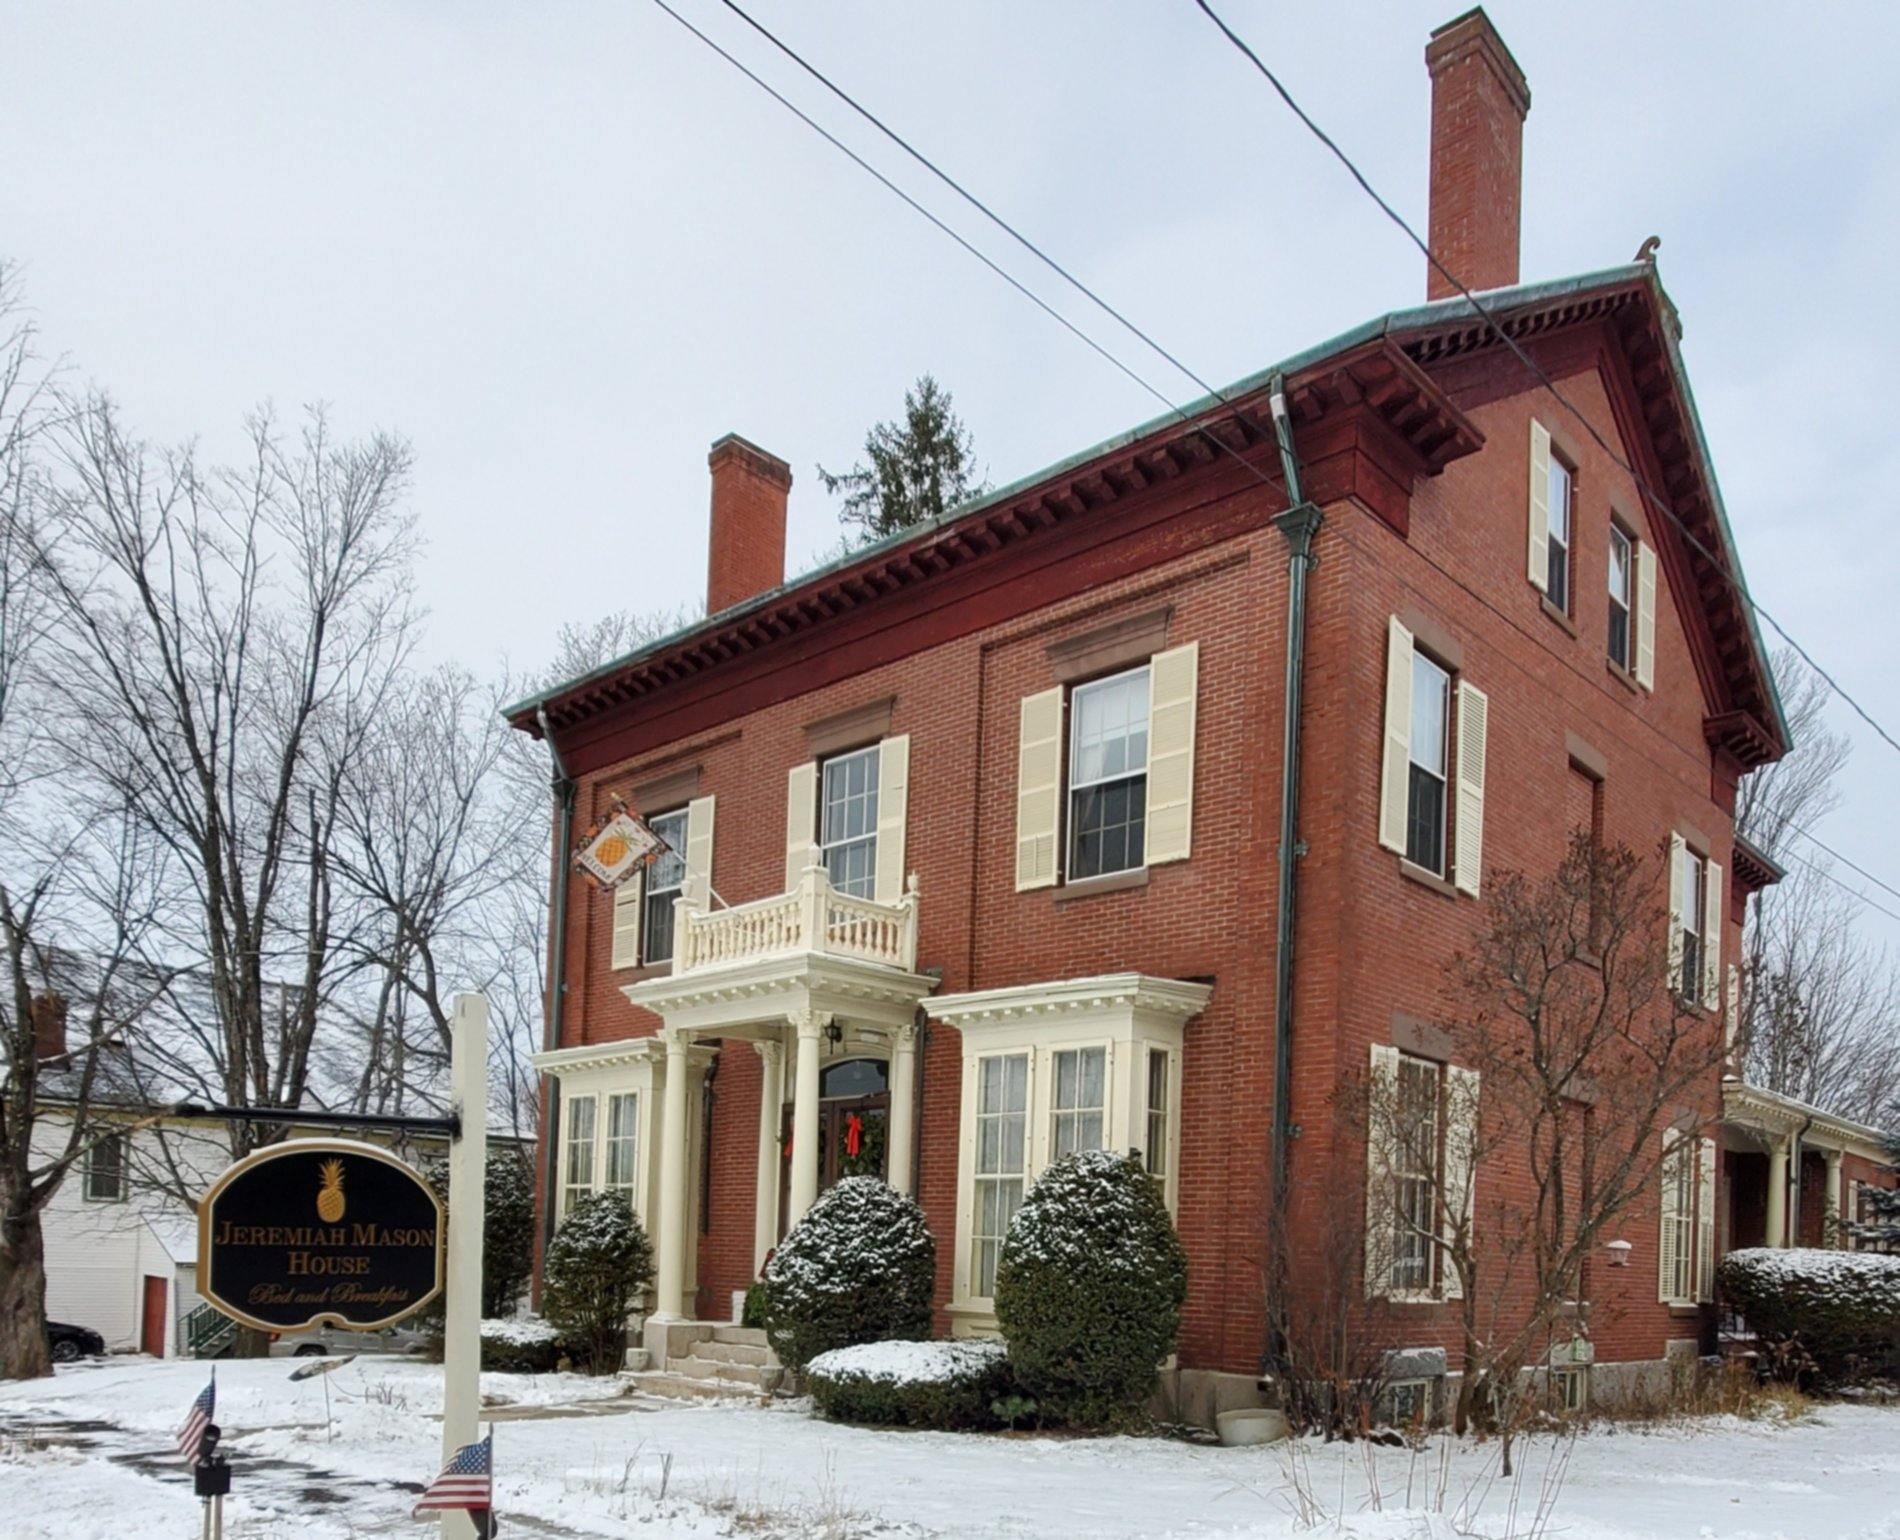 A house covered in snow at The Jeremiah Mason House Bed and Breakfast.